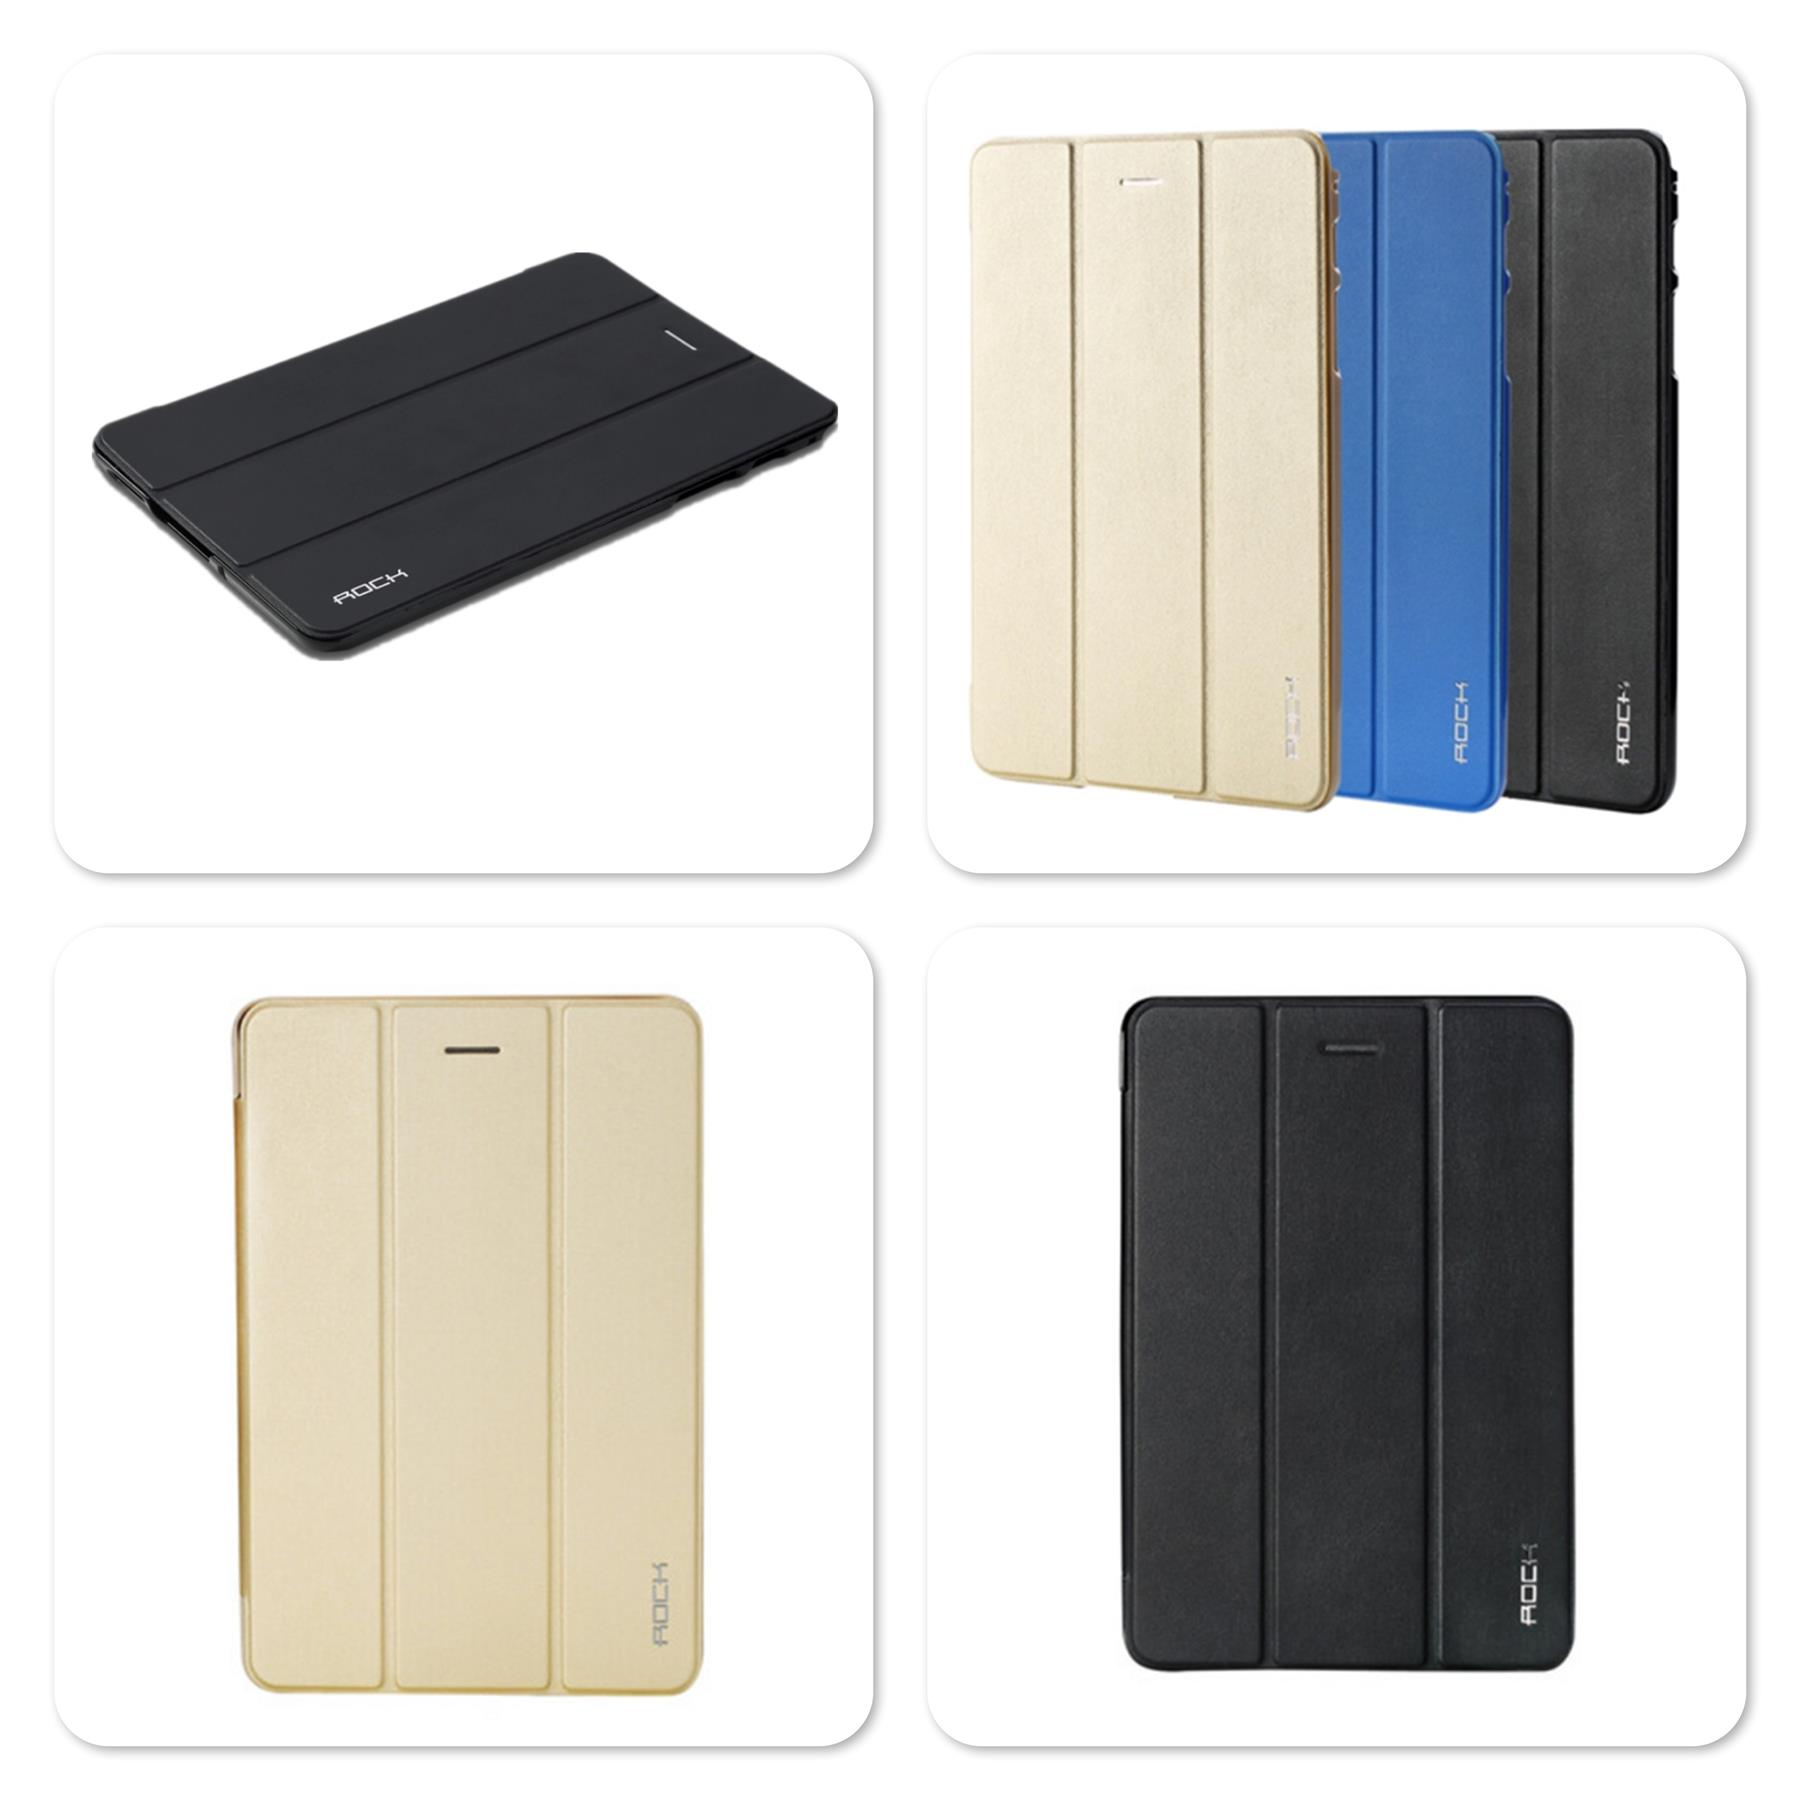 Bdotcom = Samsung Galaxy Tab A 9.7 T550 Rock Touch series Leather Case